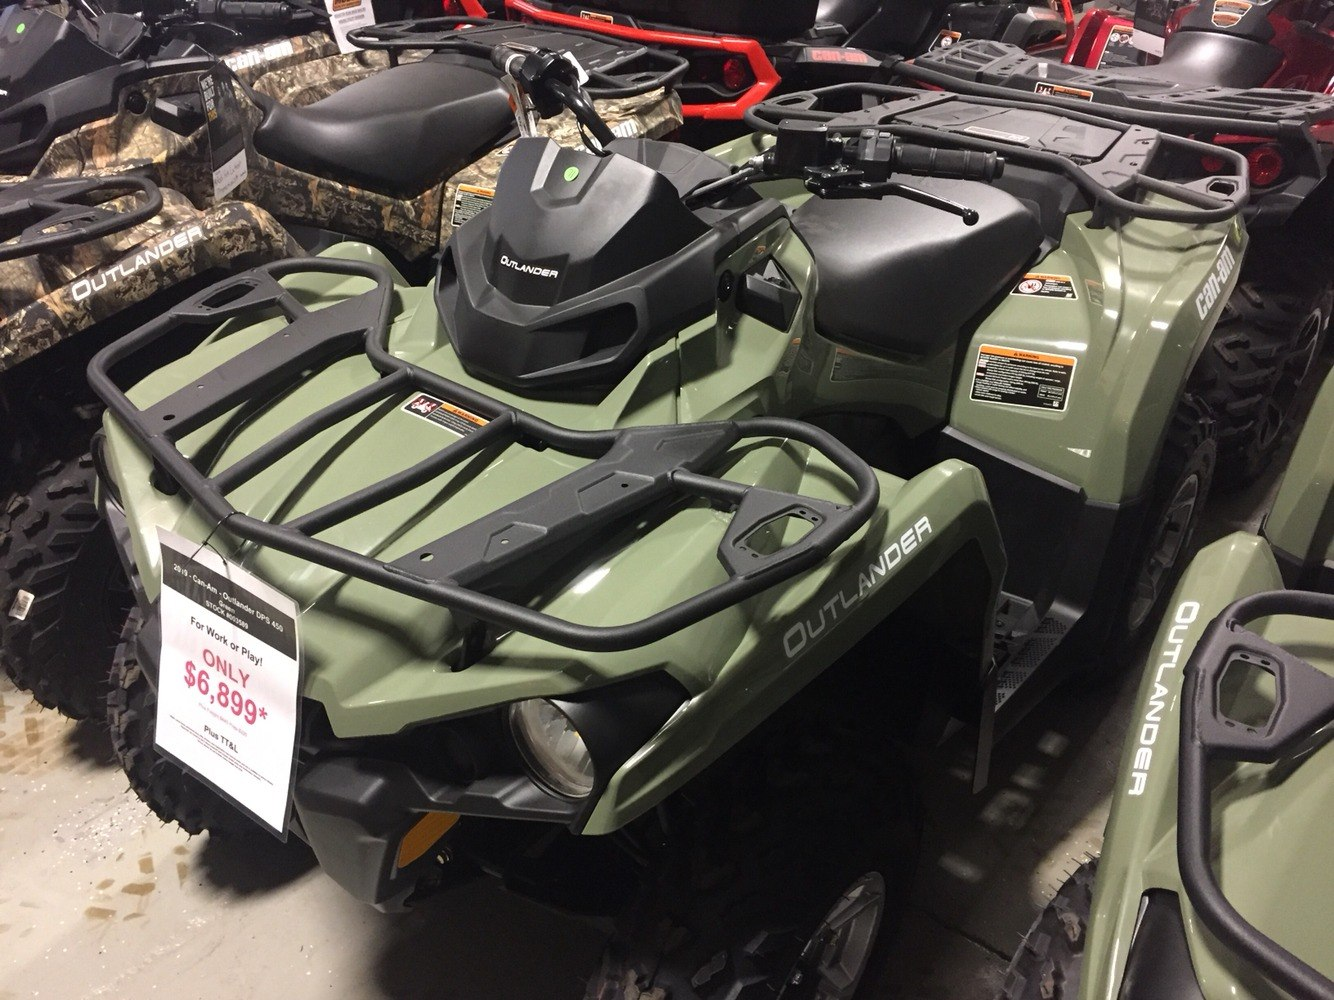 2019 Can-Am OUTLANDER DPS 450EFI in Waco, Texas